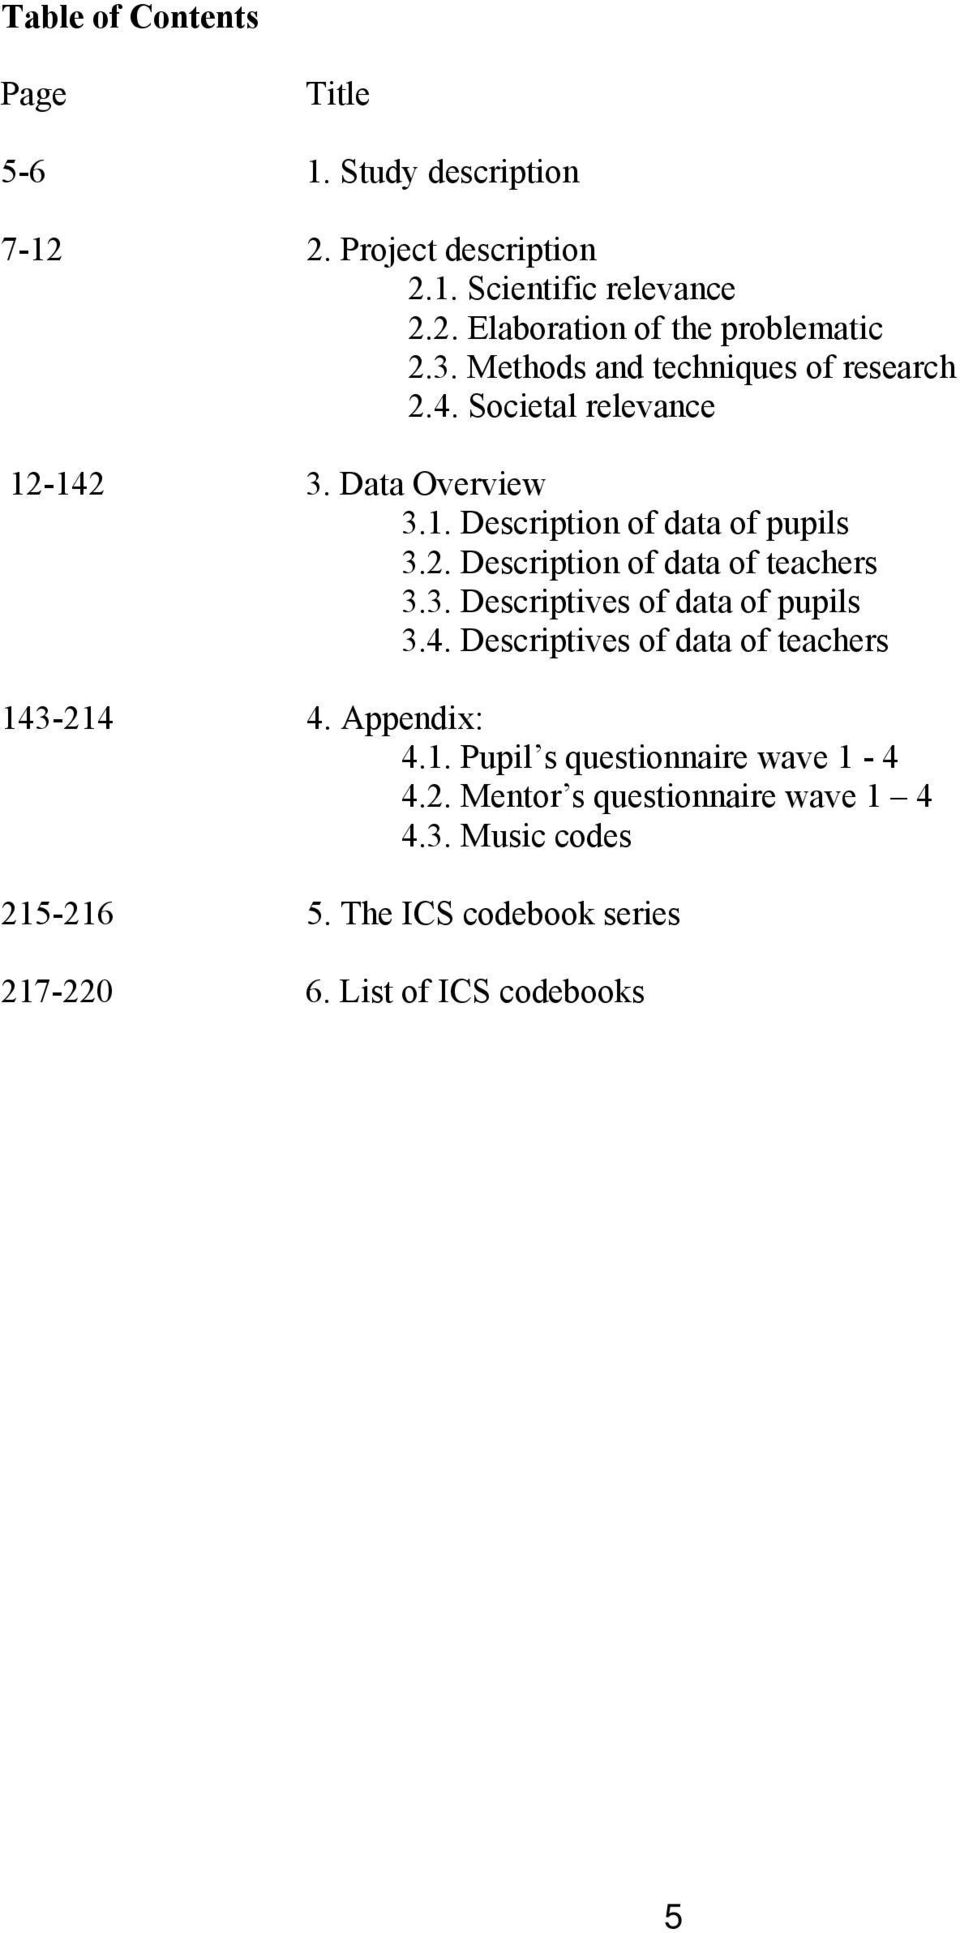 3. Descriptives of data of pupils 3.4. Descriptives of data of teachers 143-214 4. Appendix: 4.1. Pupil s questionnaire wave 1-4 4.2. Mentor s questionnaire wave 1 4 4.